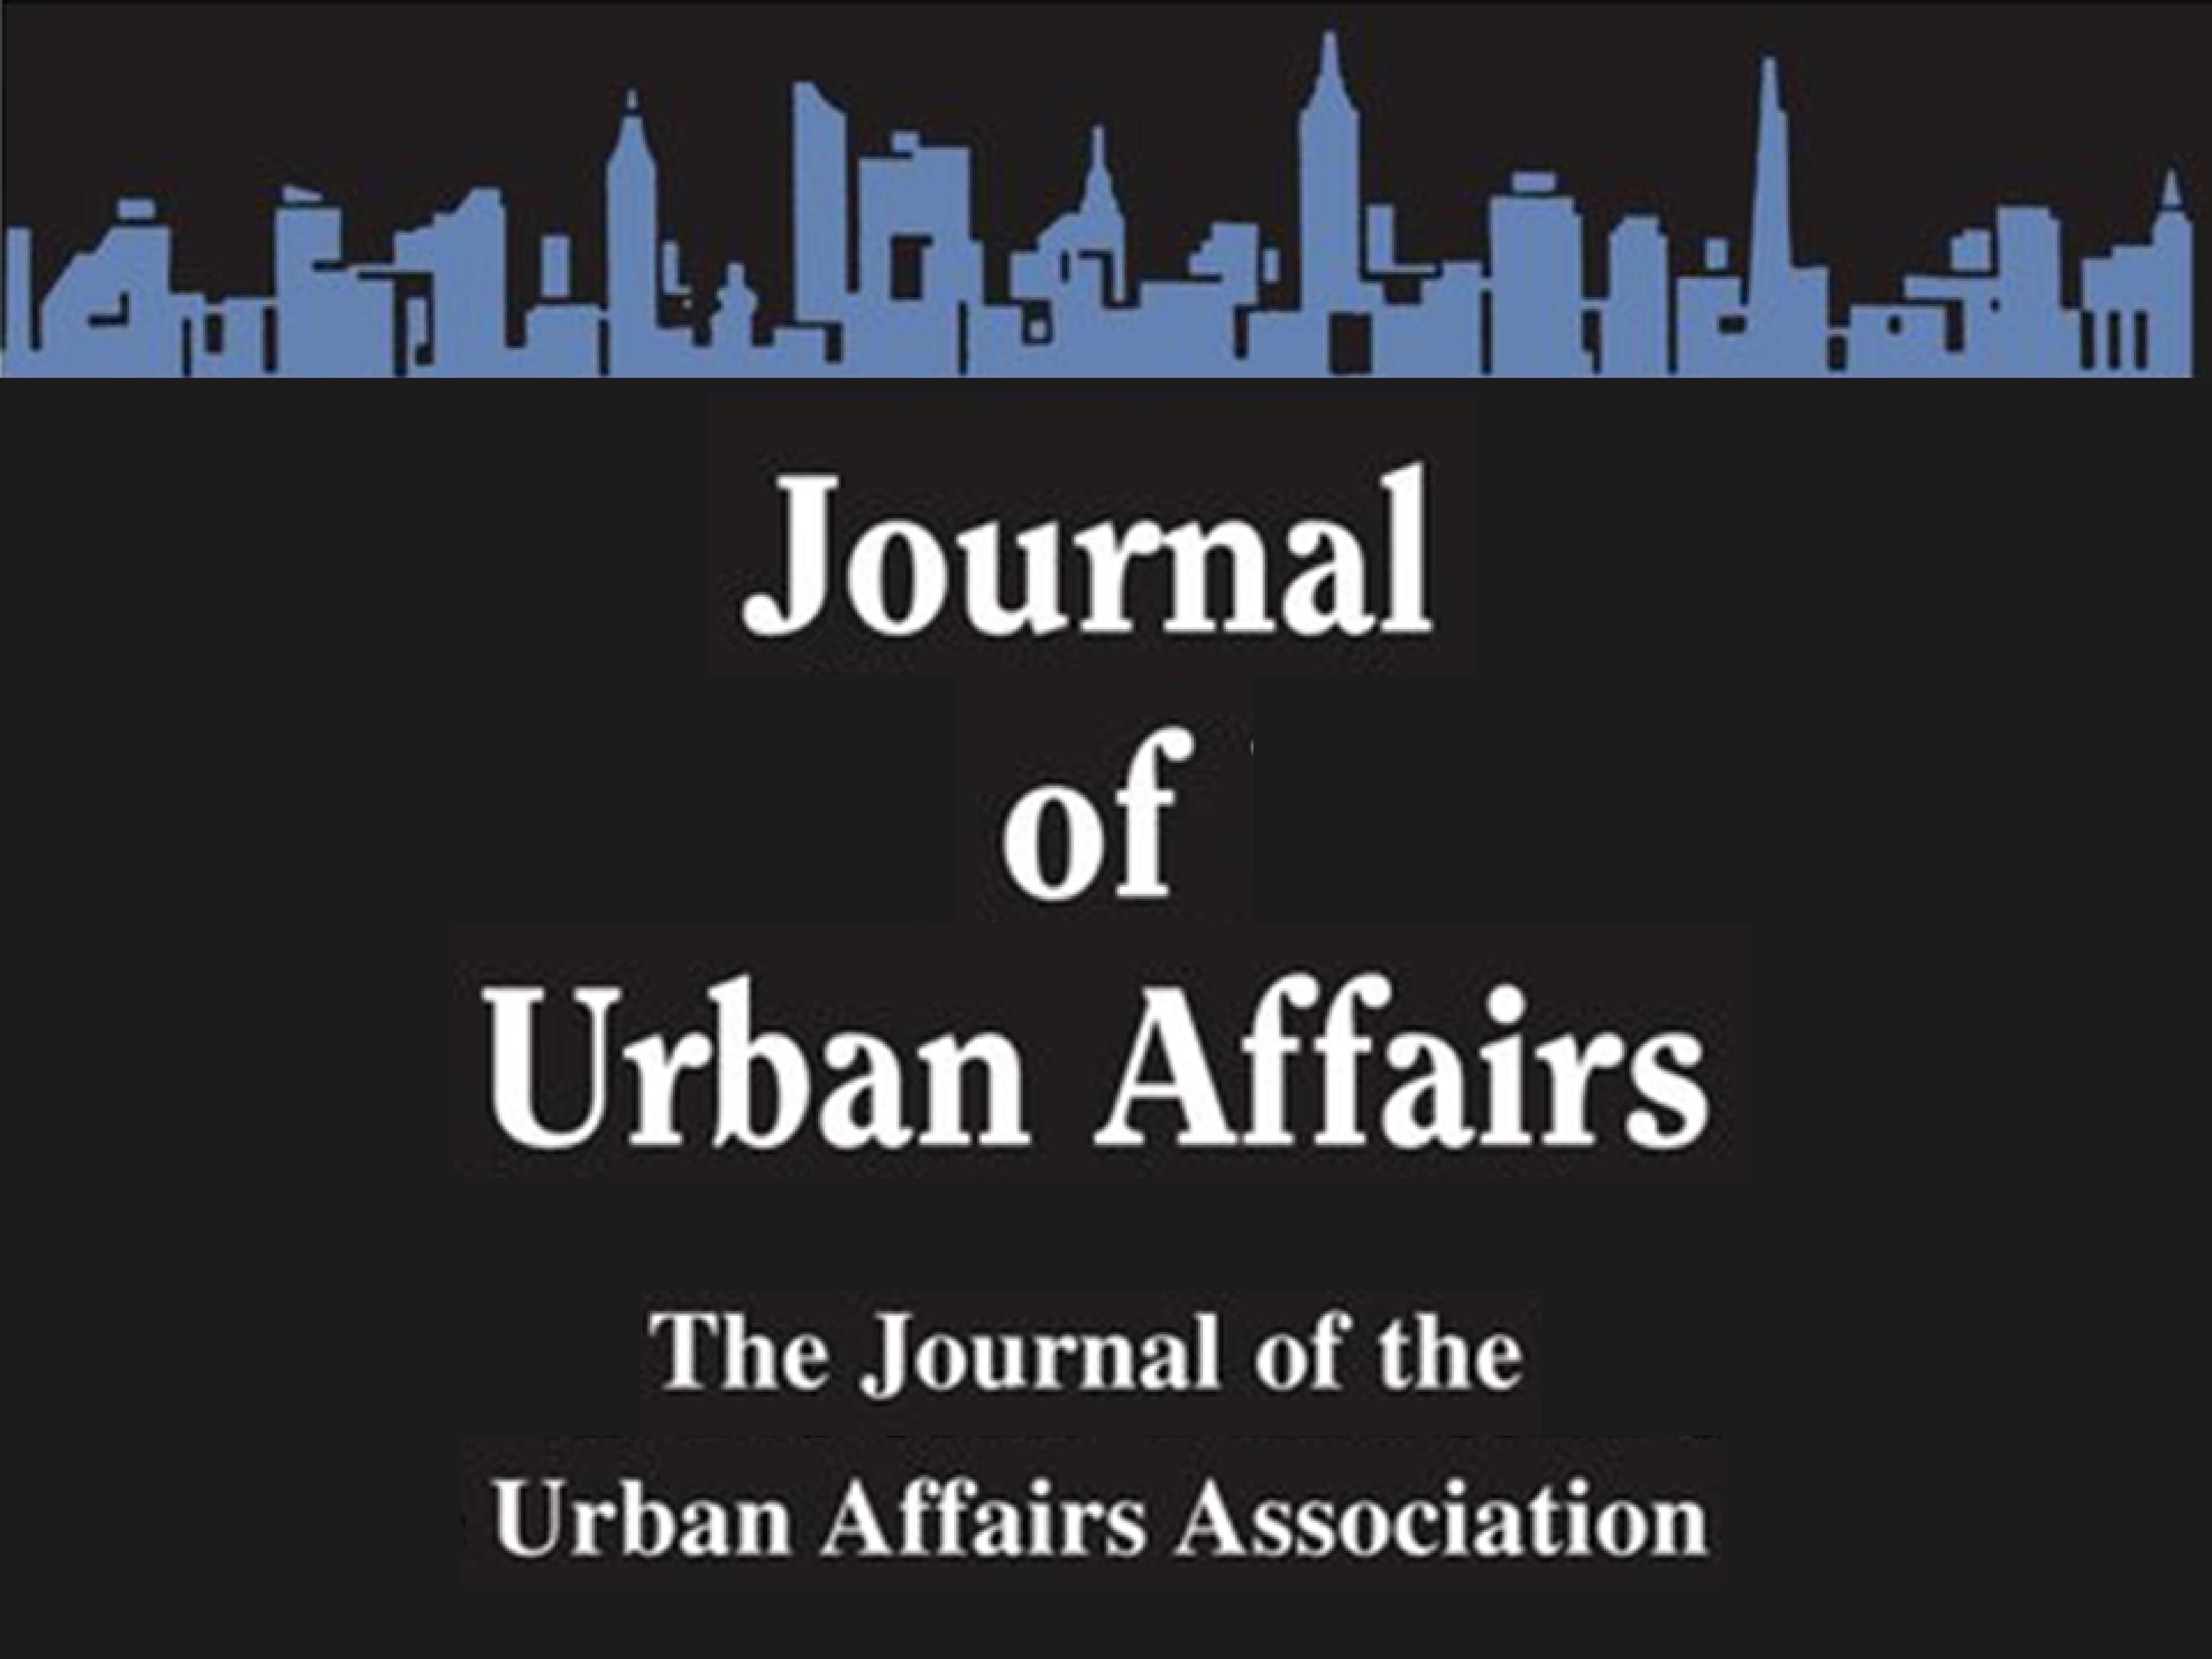 Journal of Urban Affairs